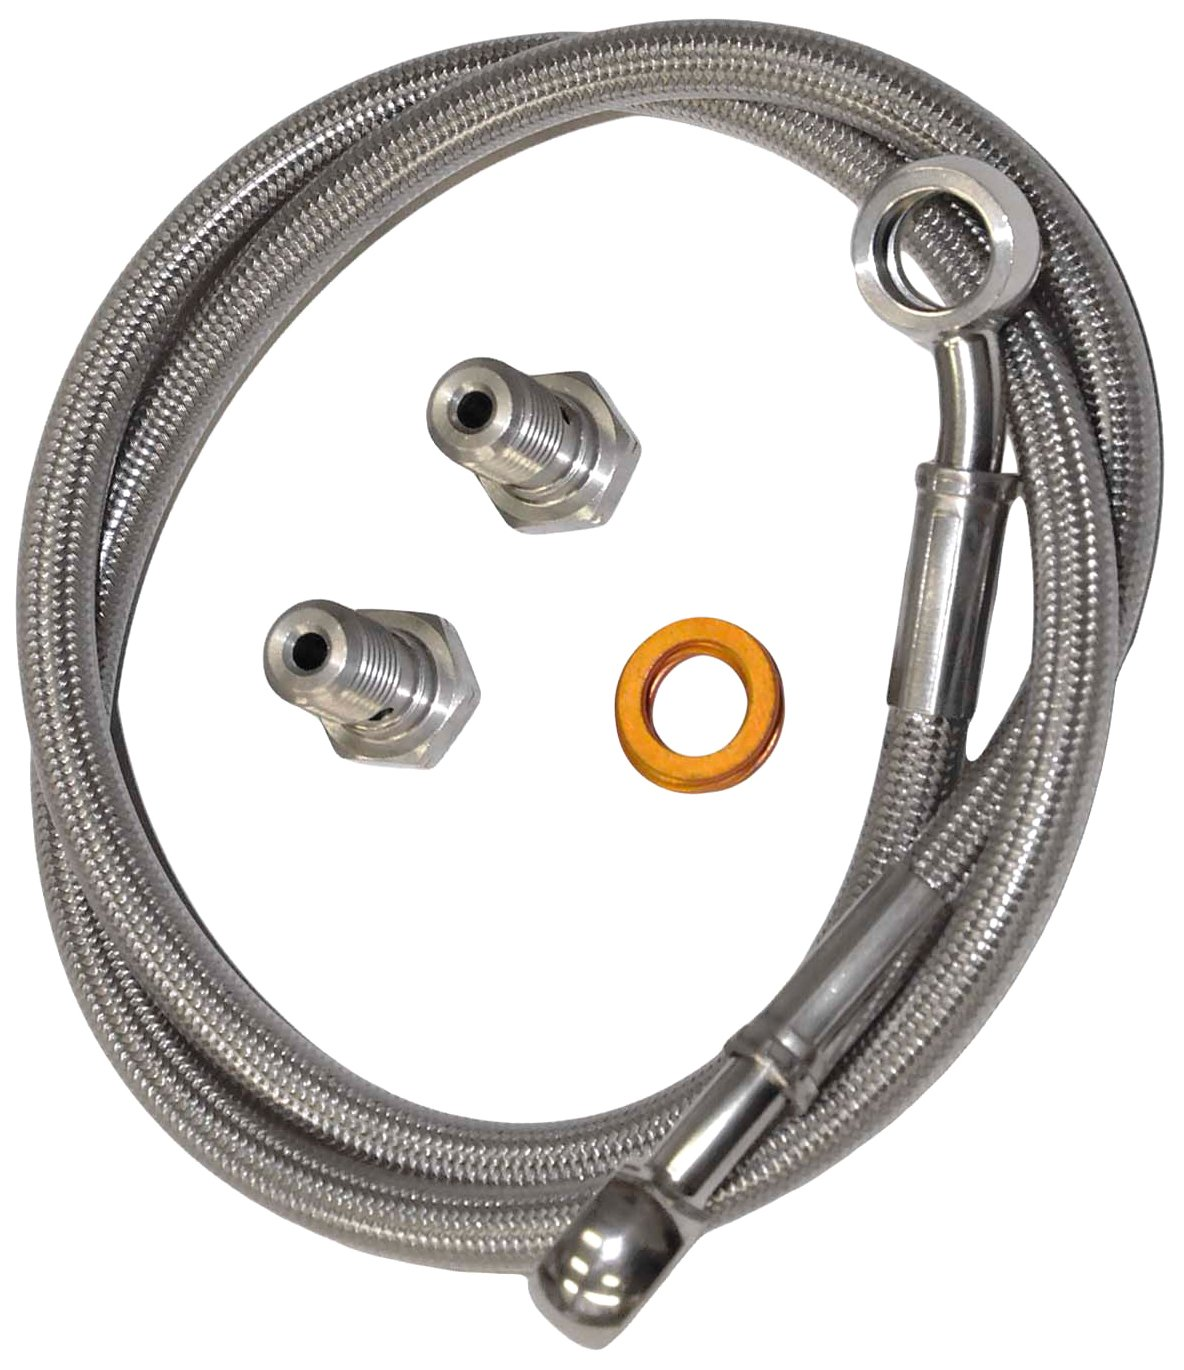 Yana Shiki MSR1149 Stainless Steel Rear Brake Line Kit for Ducati 900 Superlight II